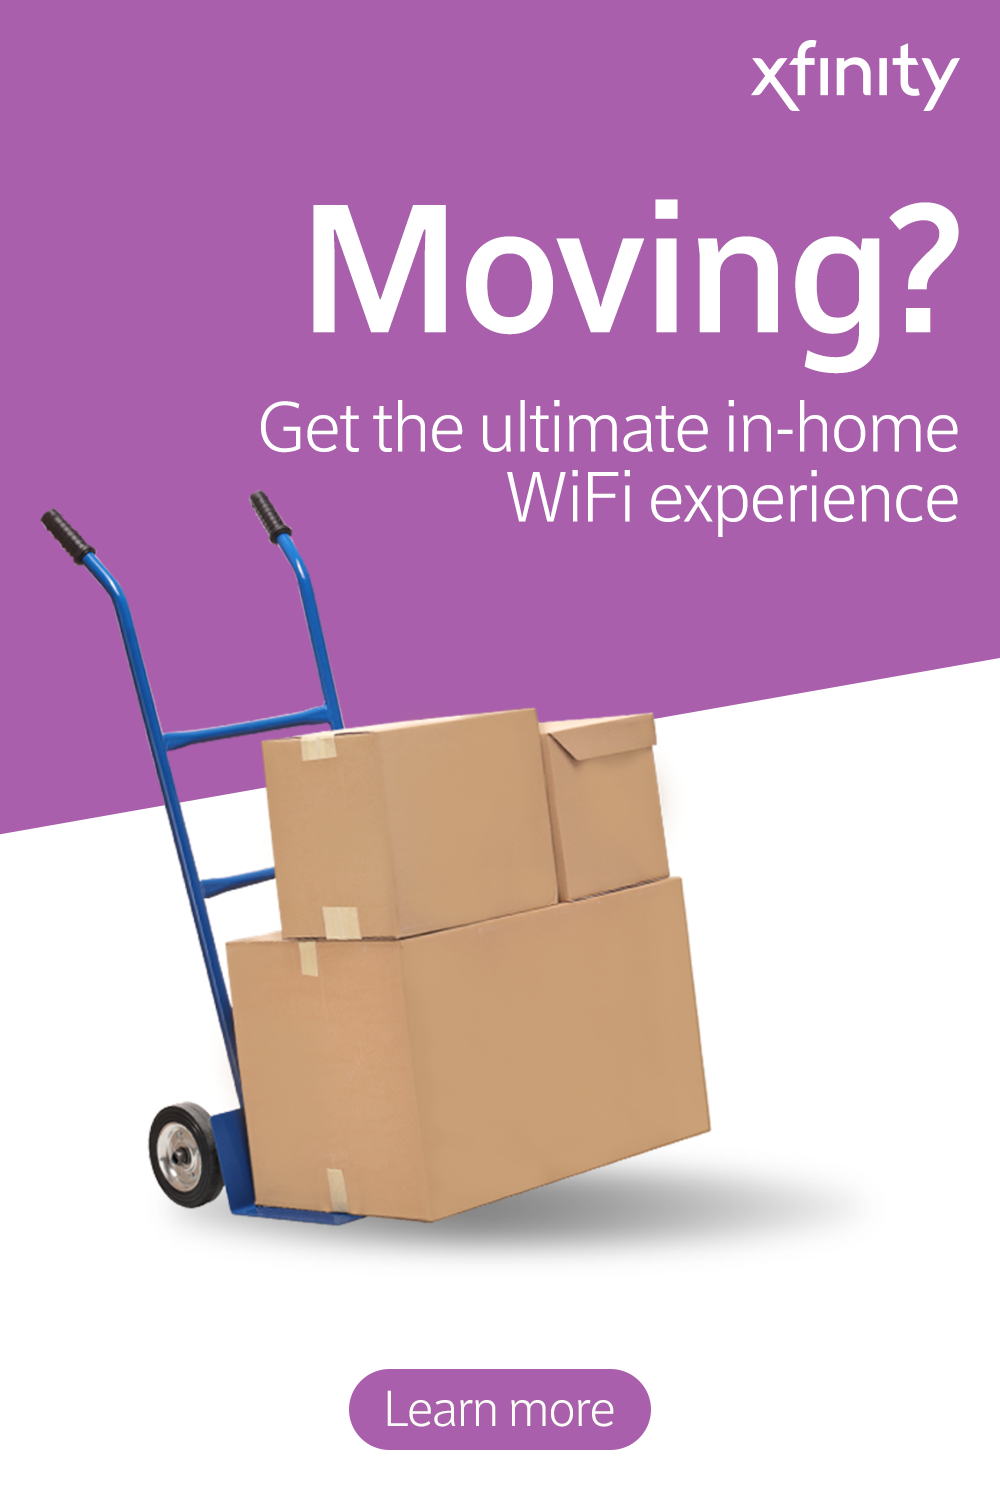 Get the speed you need in your new home with Xfinity  Transfer or